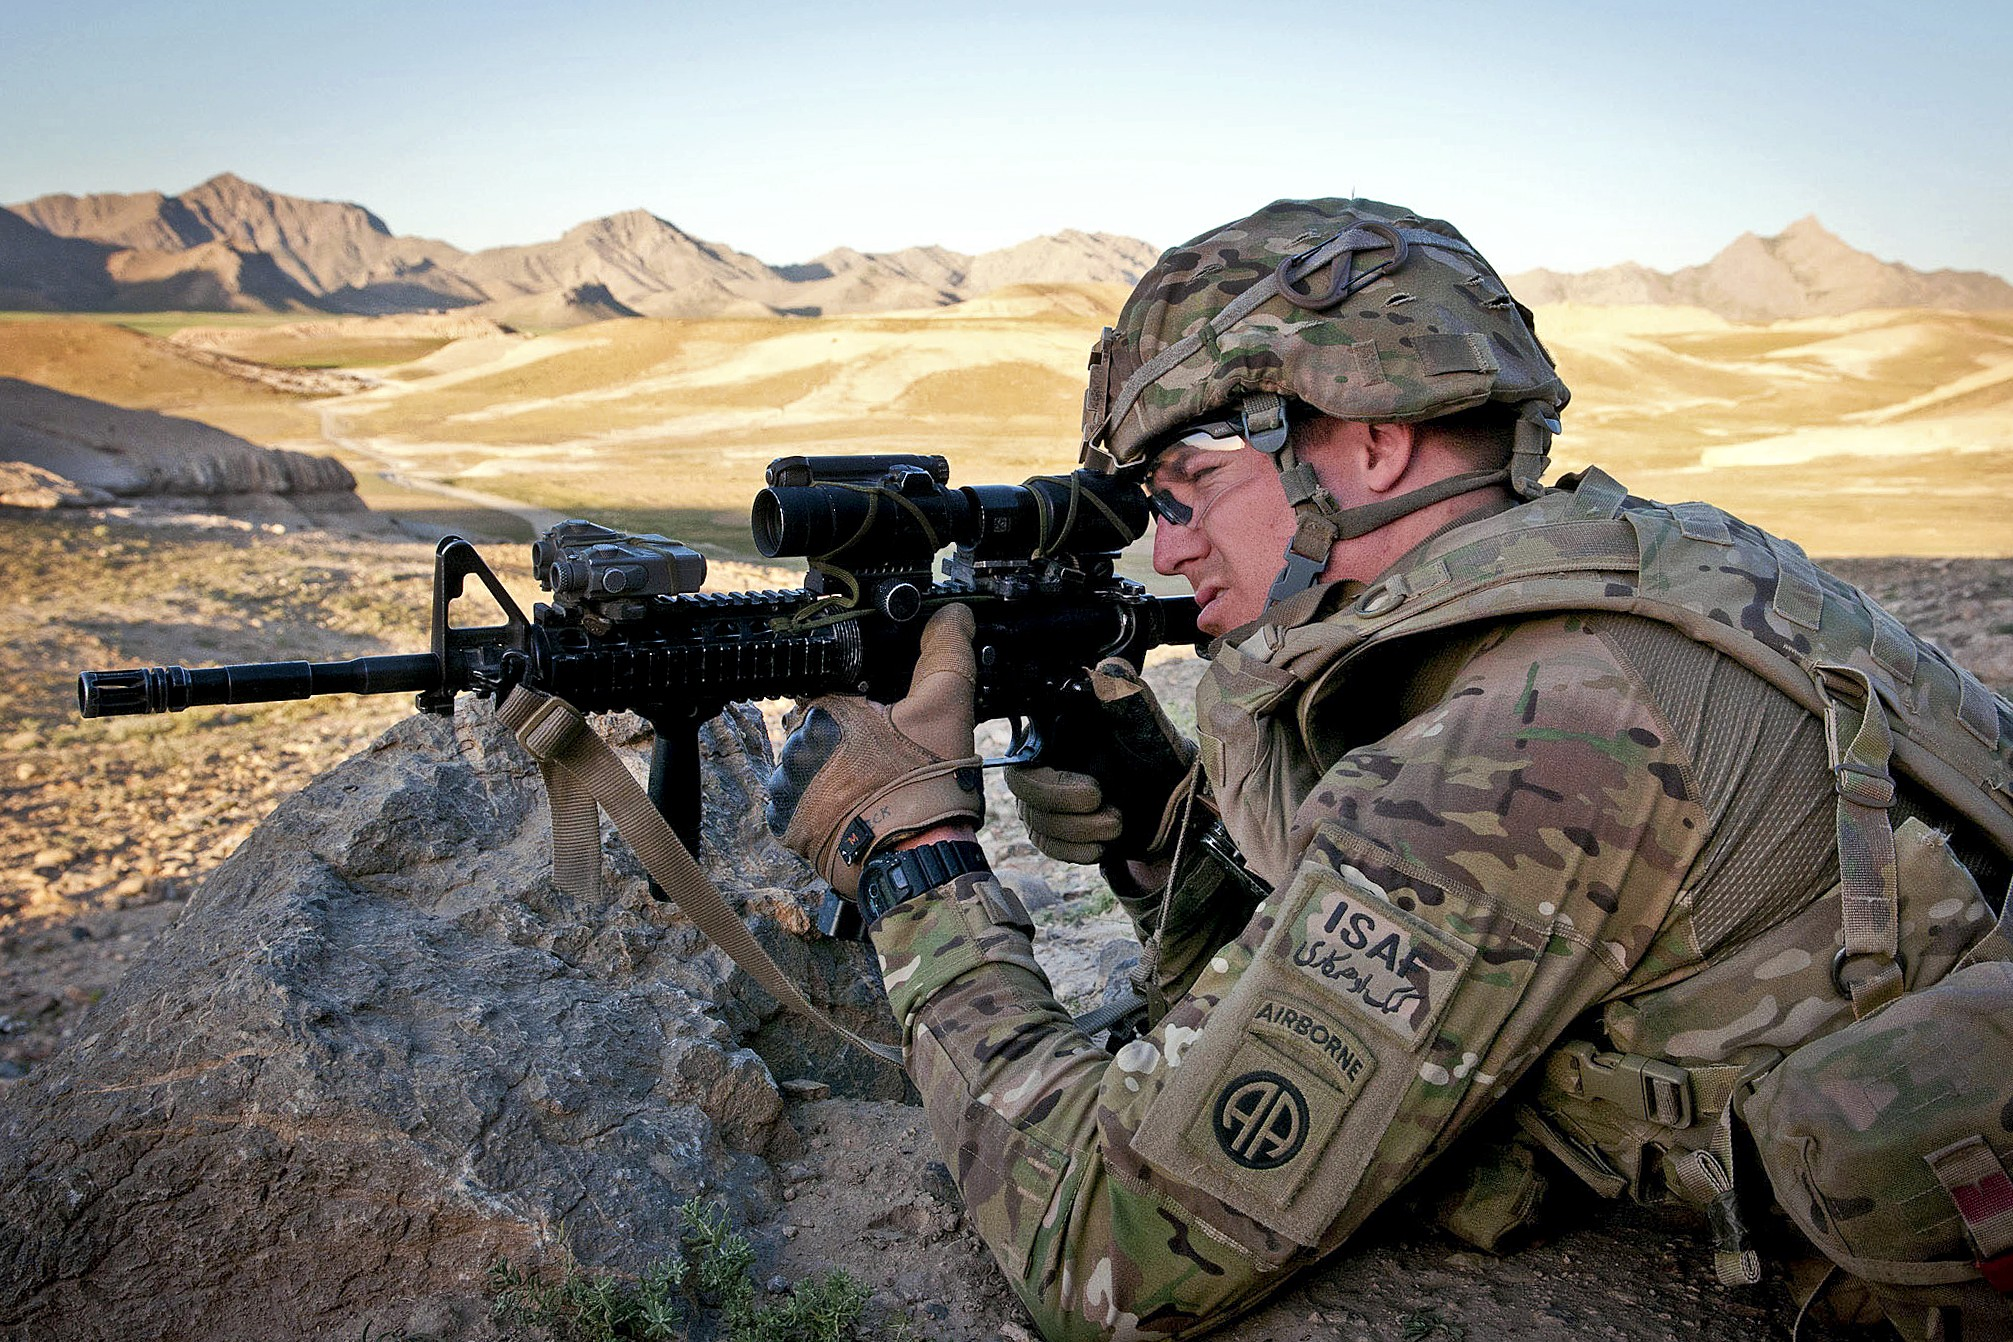 USA Afghanistan M4A1 Multicam Aimpoint comp m4 wallpaper backgroundParatrooper Wallpaper